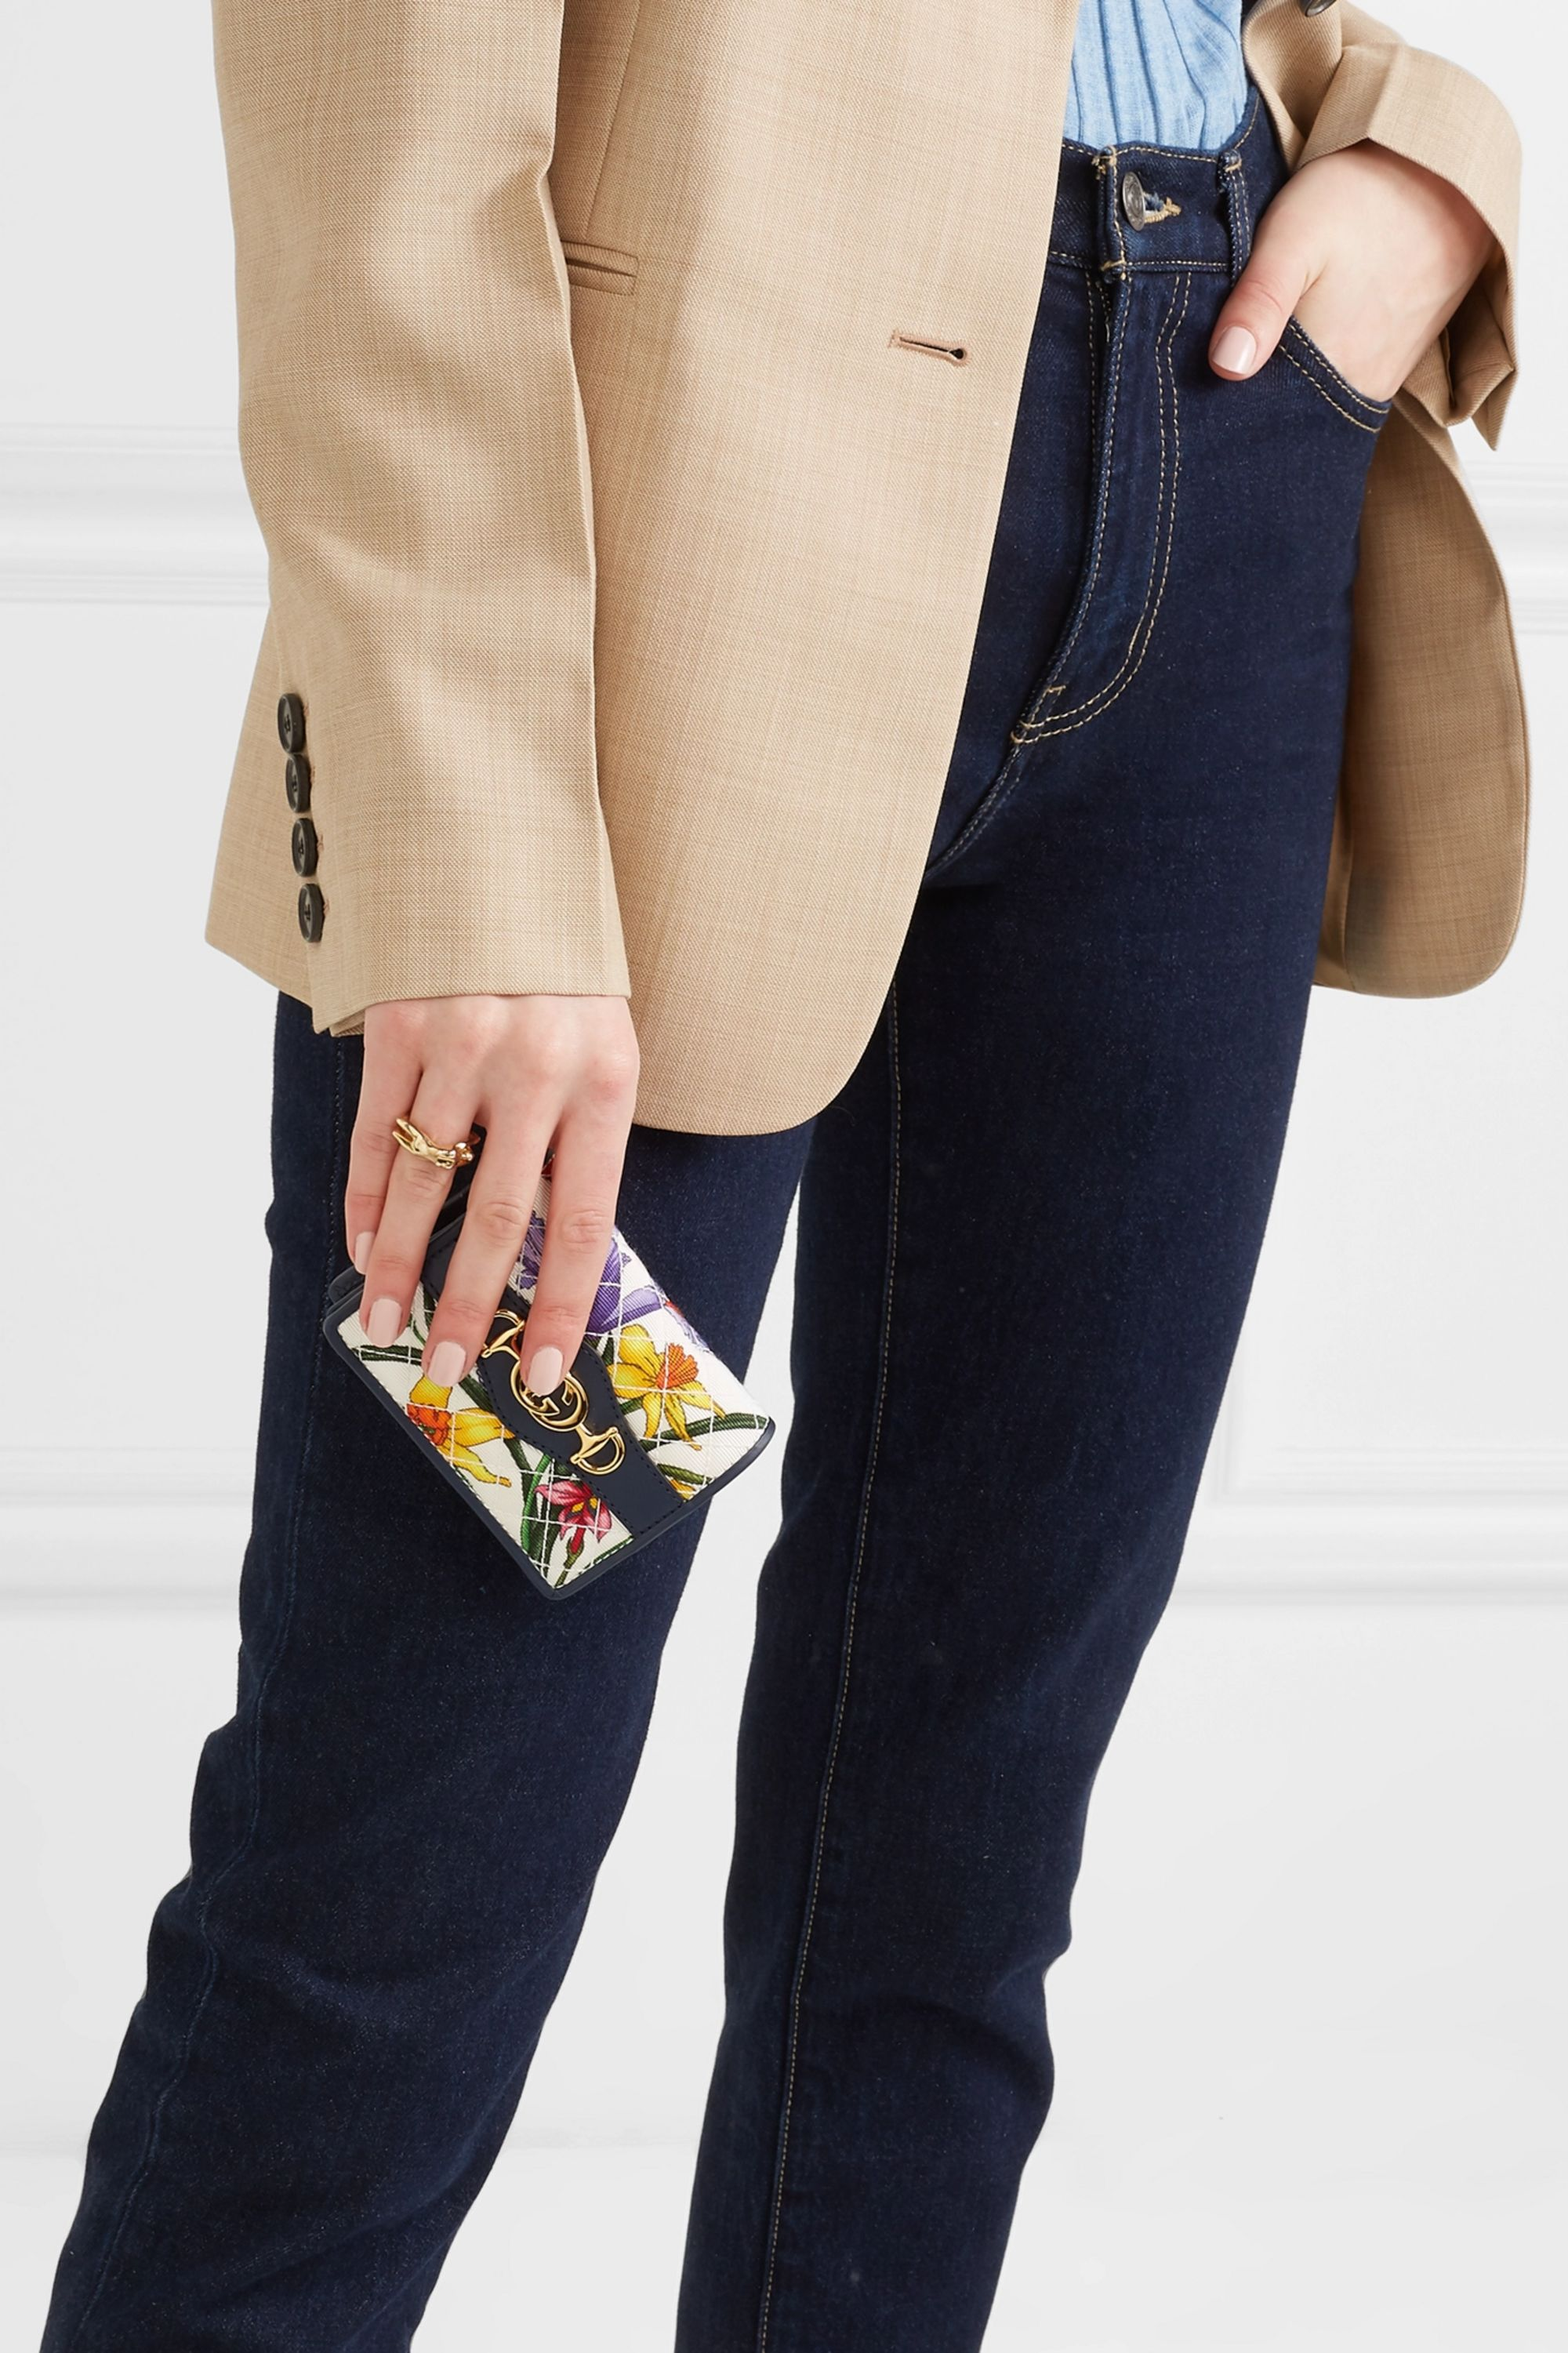 Gucci Leather-trimmed floral-print faille cardholder